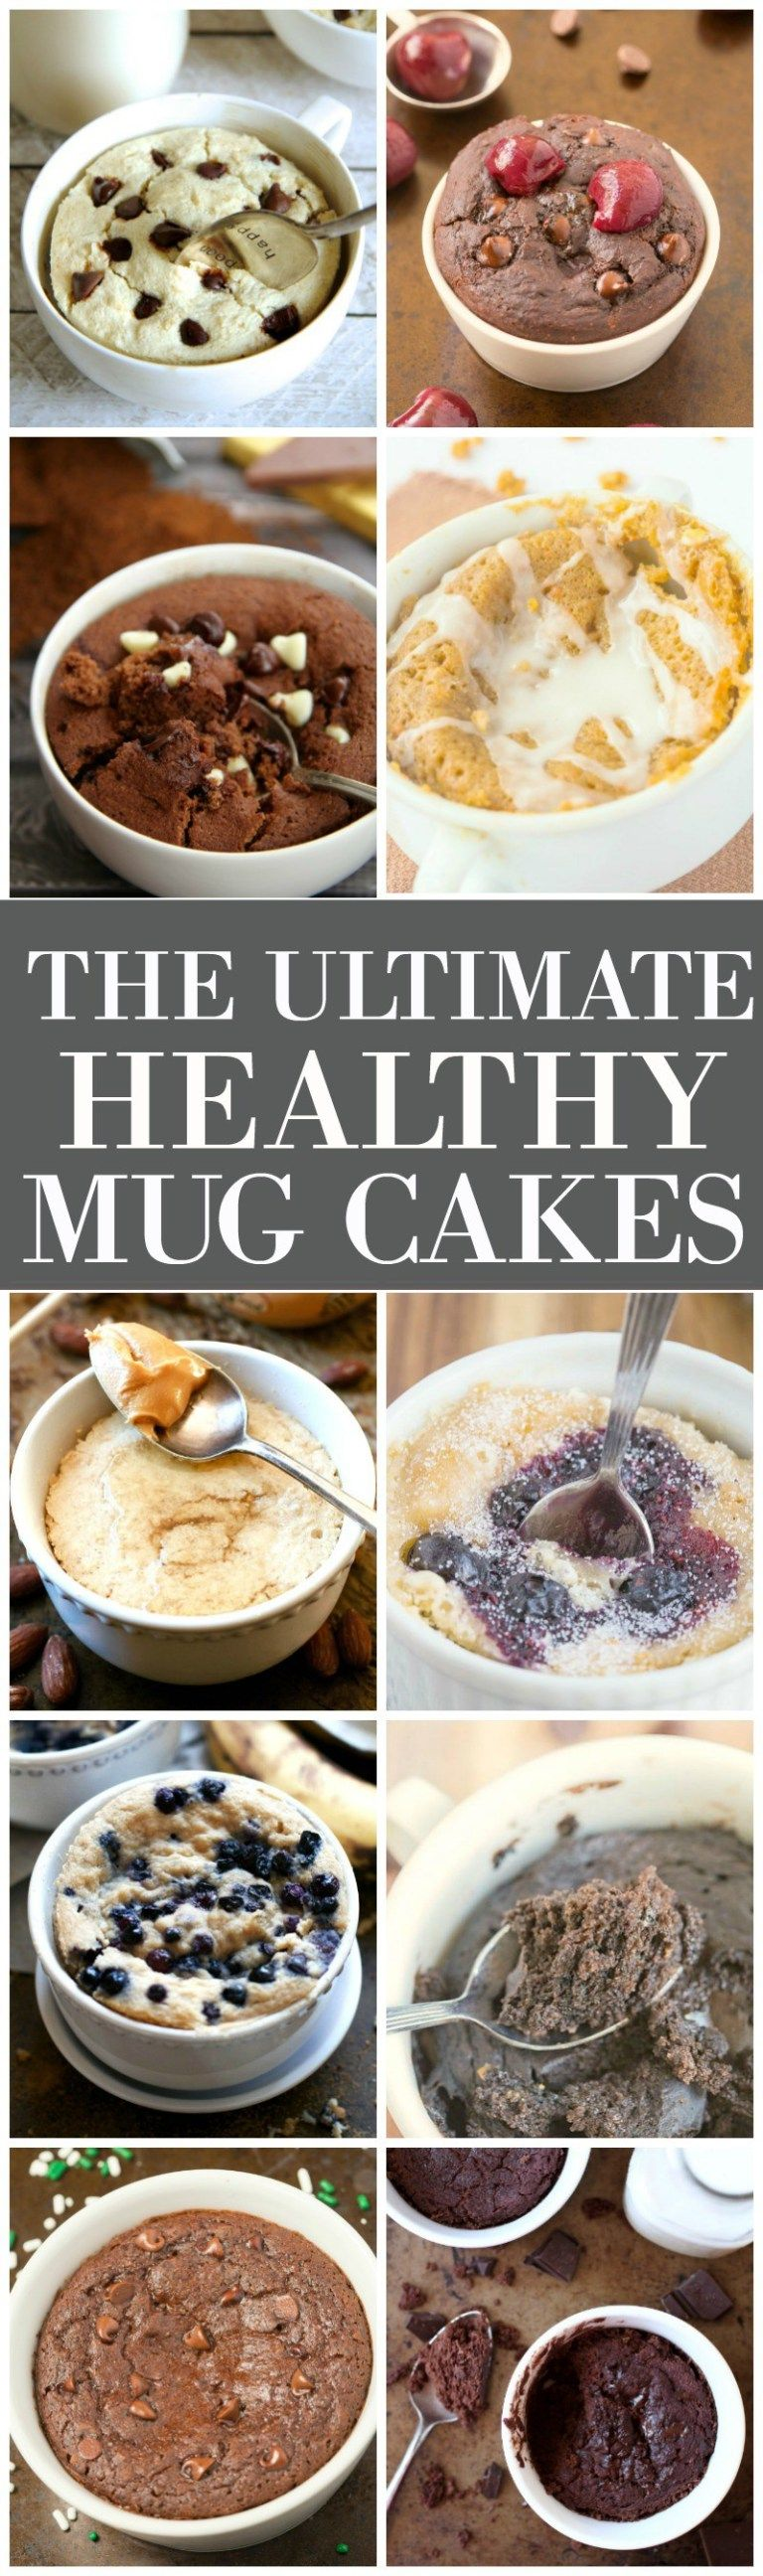 The Ultimate Healthy and Delicious Mug Cakes - The Big Man ...